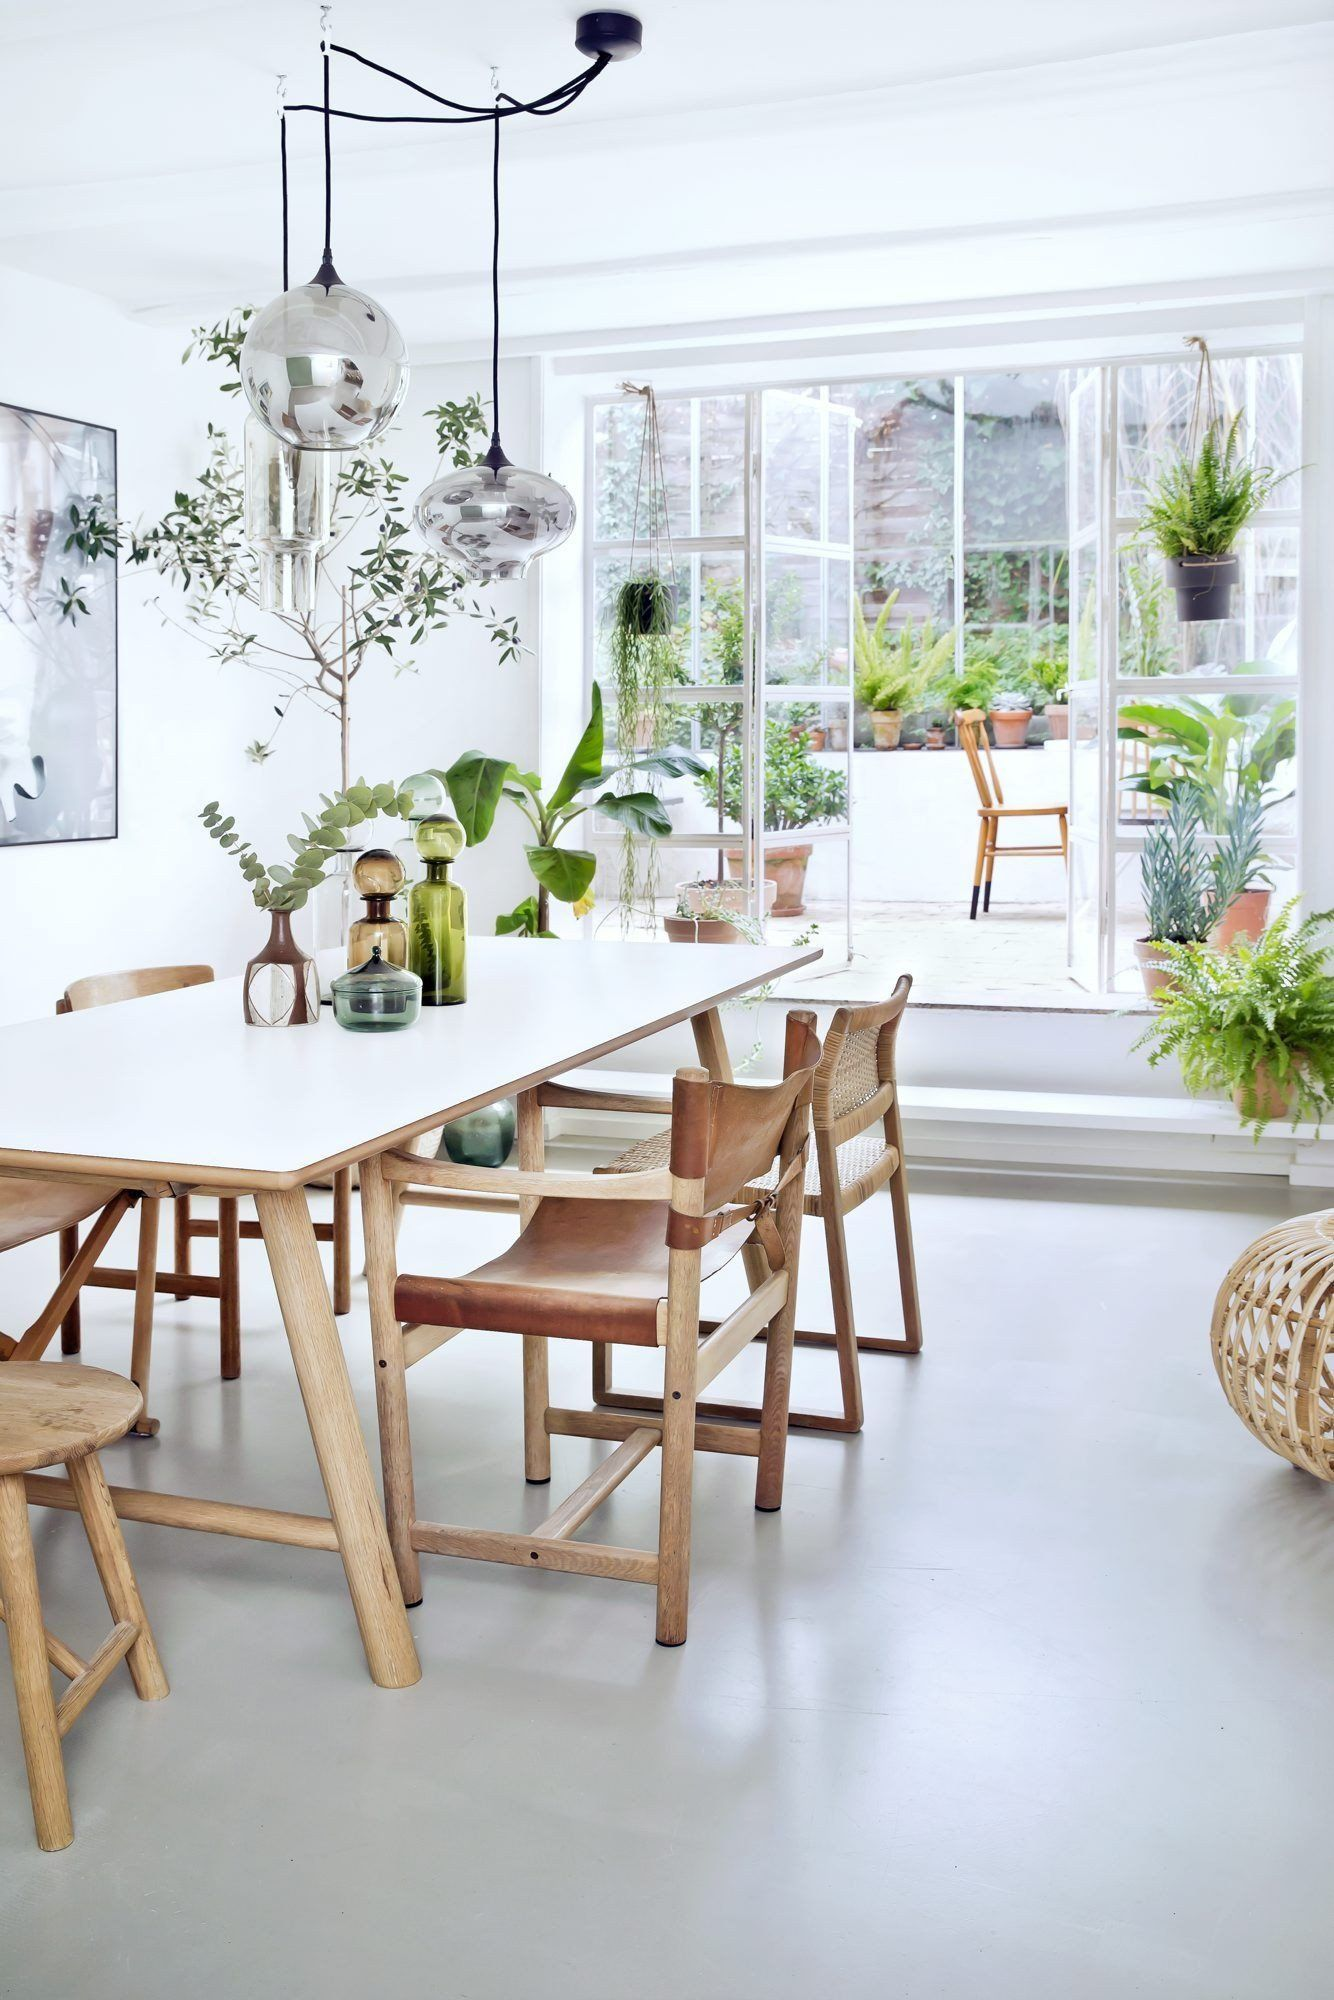 Pinterest Dining Room Table Decor What S Hot On Pinterest 5 Scandinavian Dining Rooms Minimalist Dining Room Stylish Dining Room Trendy Dining Room